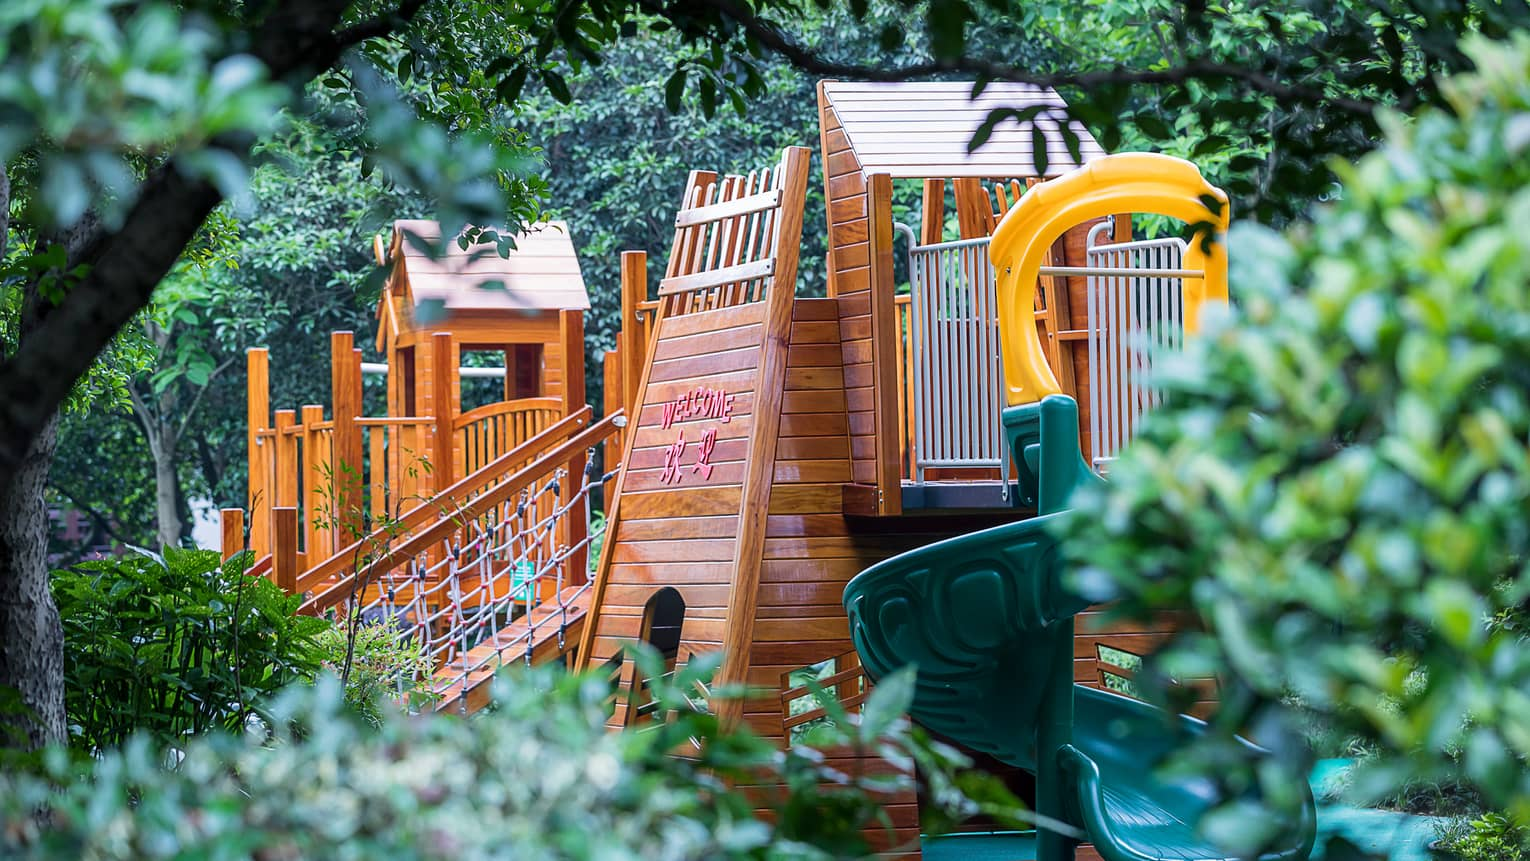 Outdoor wood playground, spiral plastic slide between trees